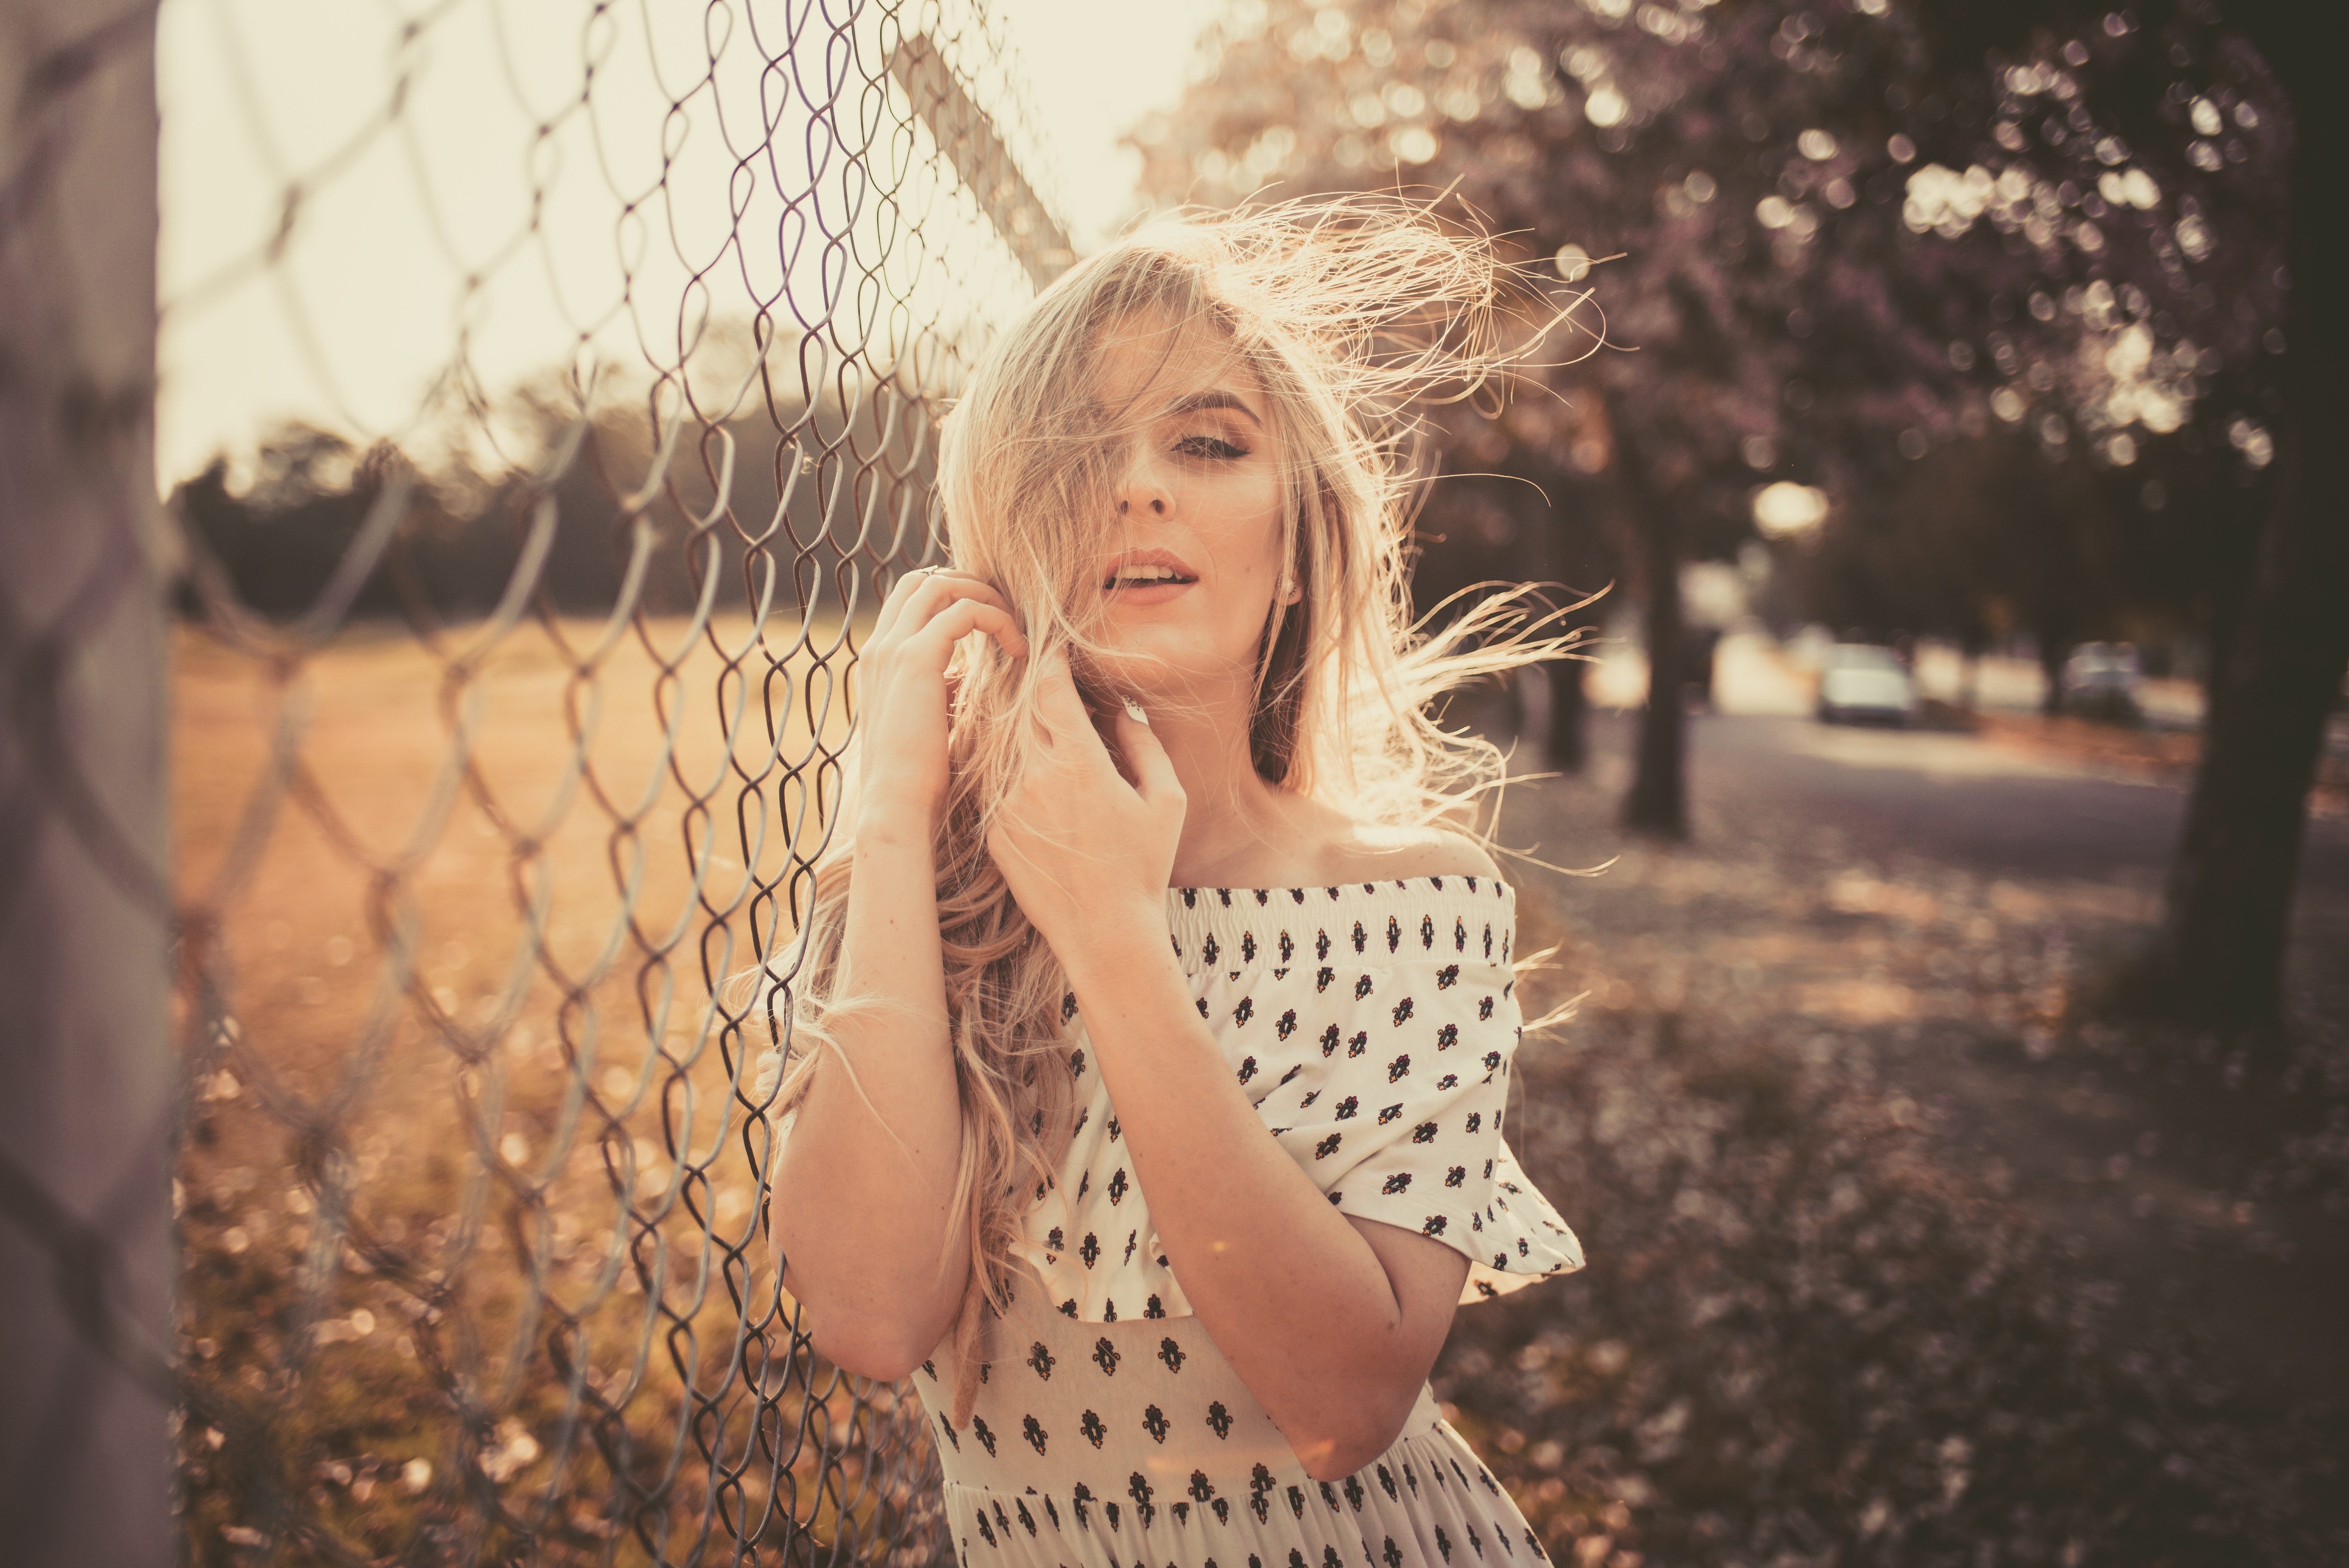 woman leaning on chain fence 1575664765 - Woman Leaning On Chain Fence -